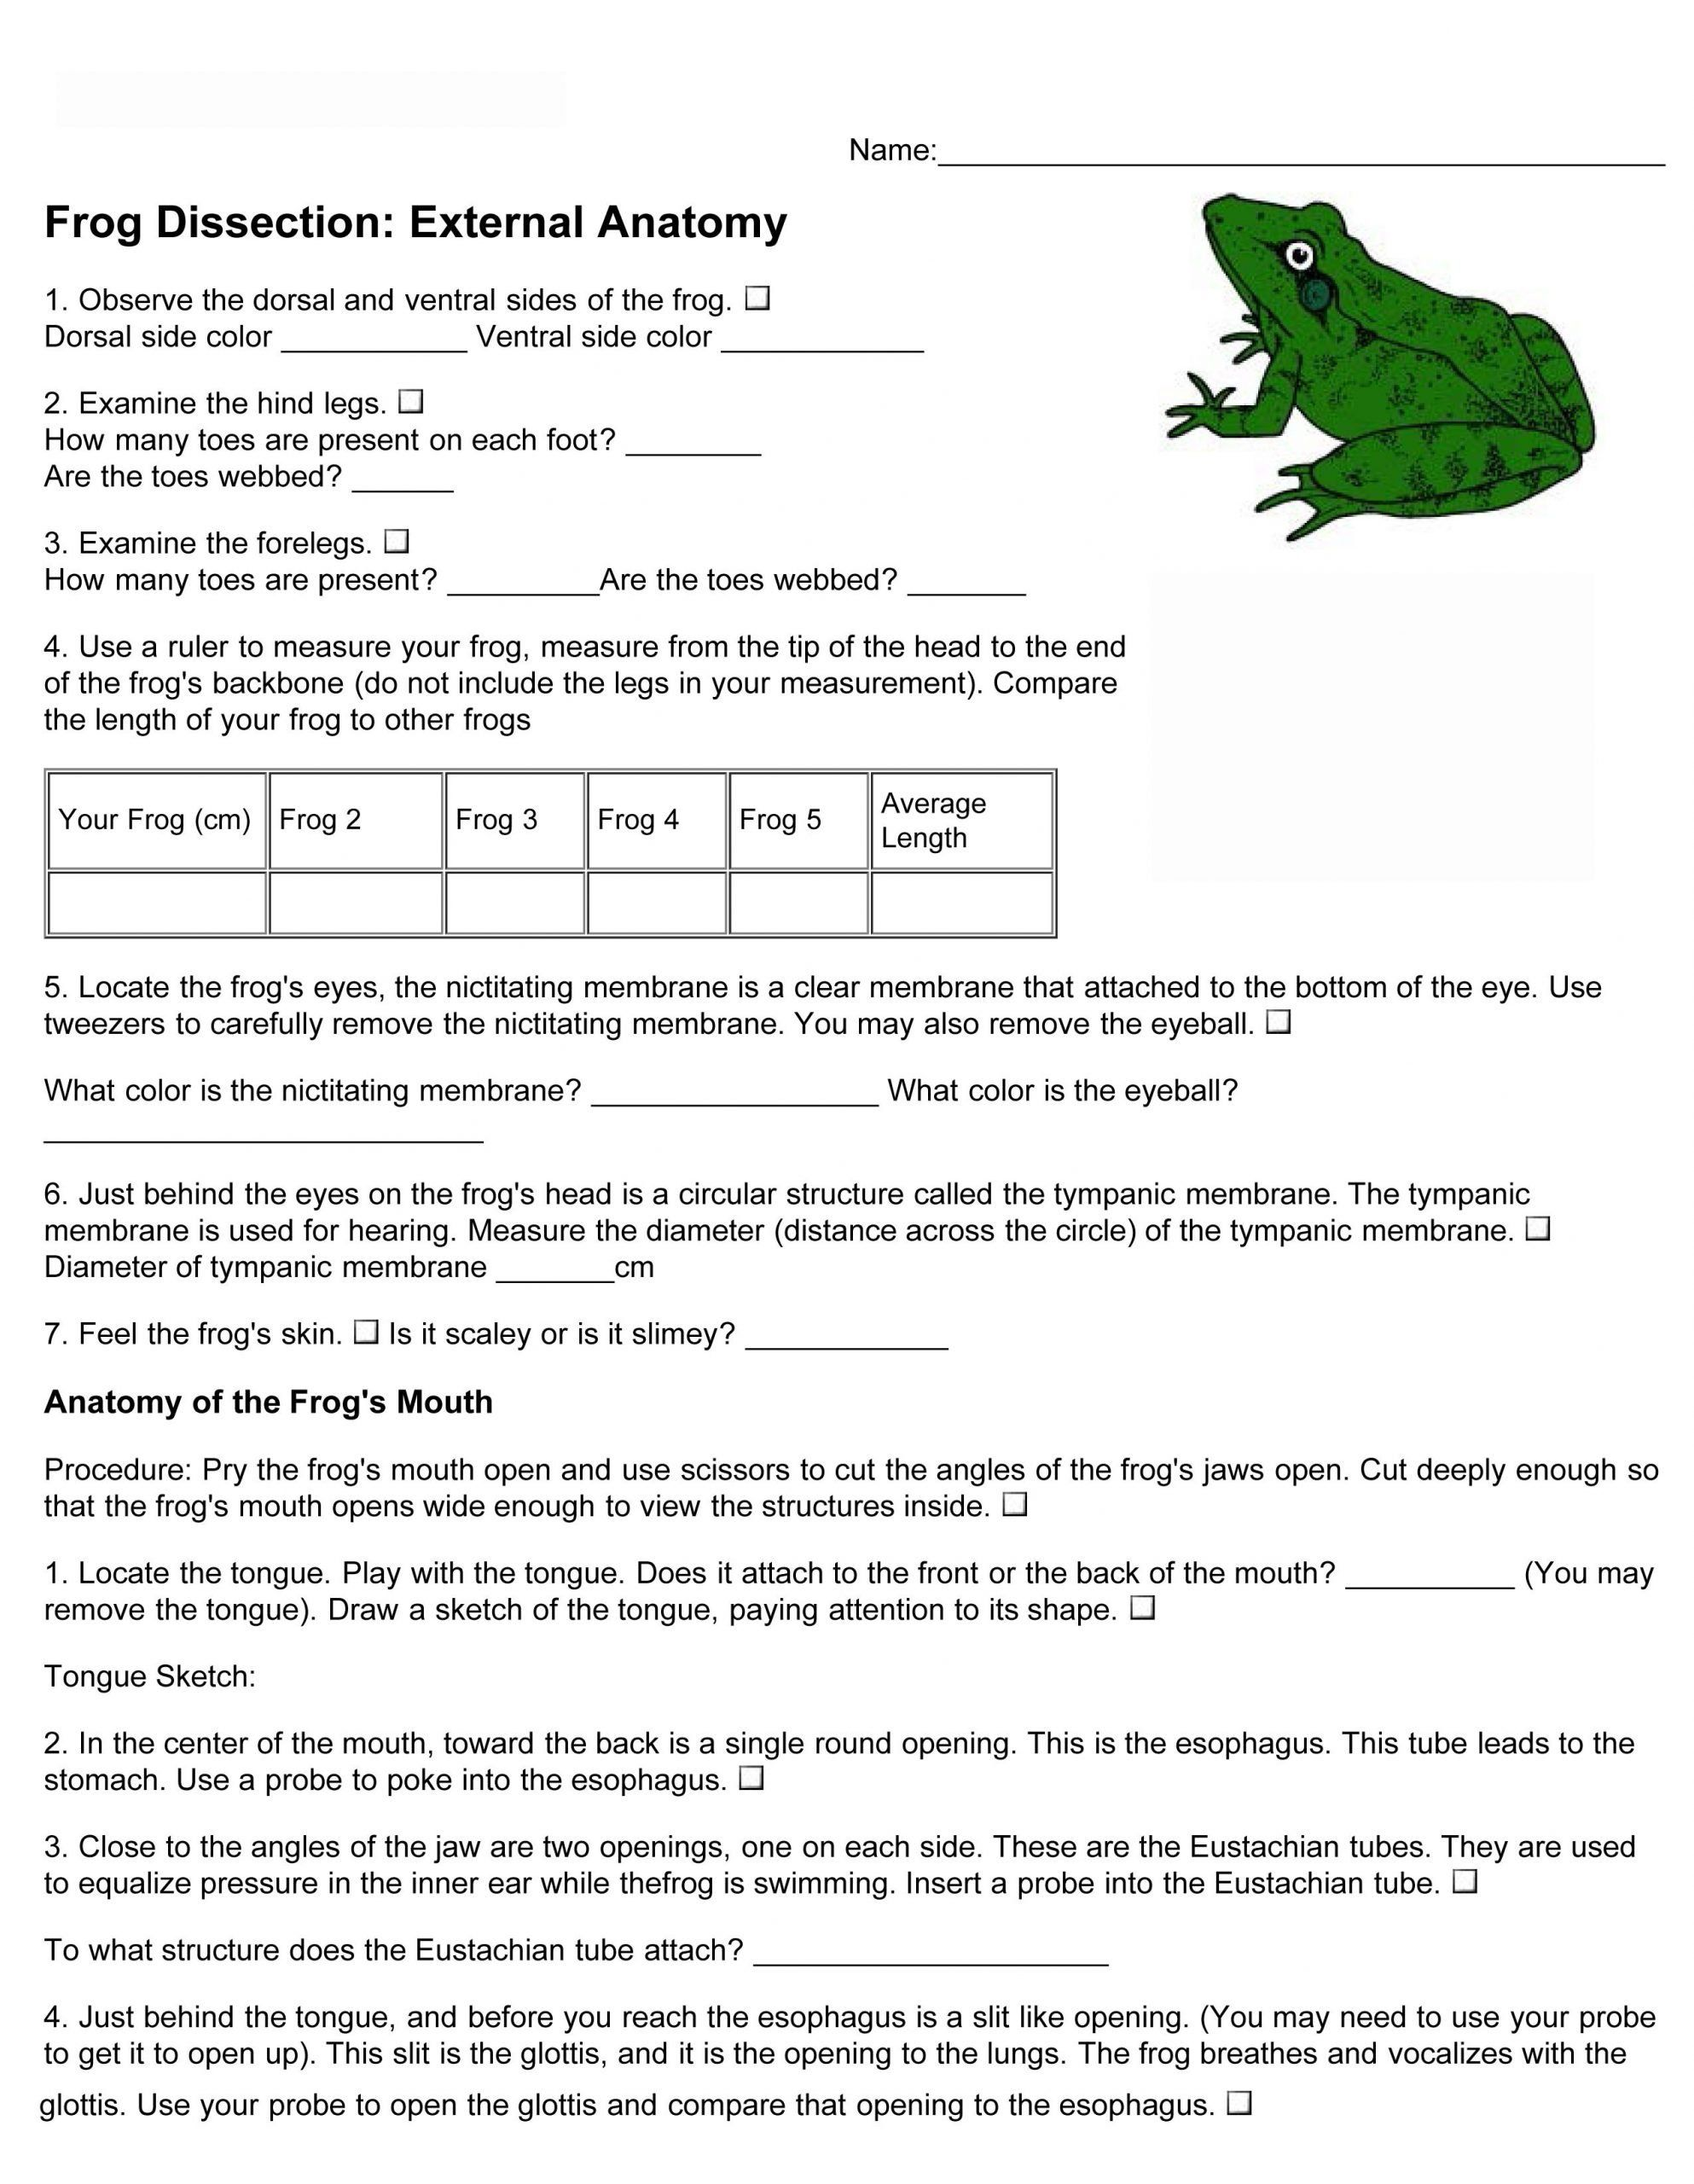 Frog Dissection Worksheet Answers Frog Dissection Lab Worksheet Answers Frog Dissection Frog Dissection Worksheet Frog Dissection Lab